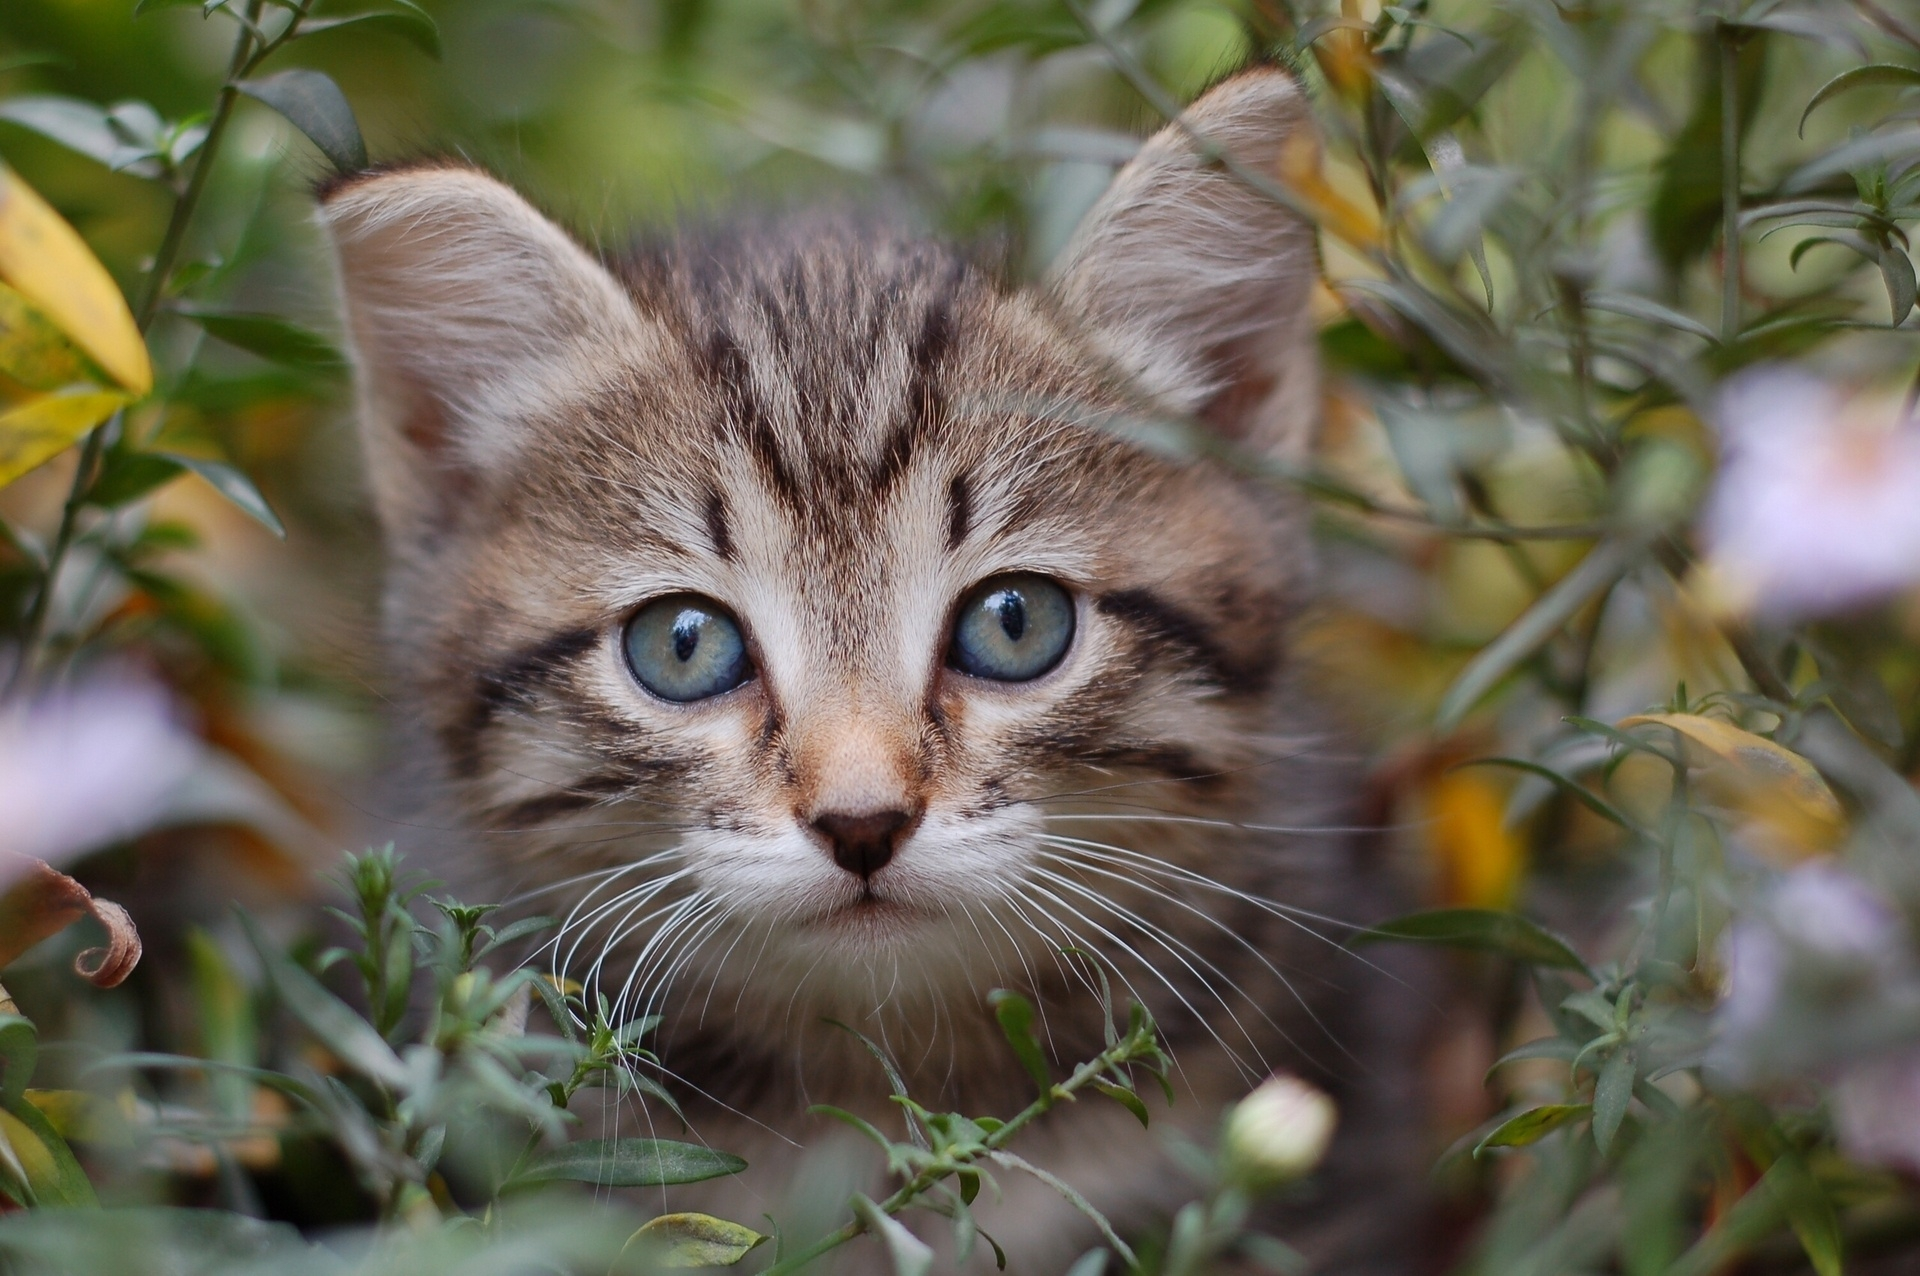 156175 download wallpaper Animals, Cat, Grass, Leaves, Peek Out, Look Out, Kitty, Kitten screensavers and pictures for free